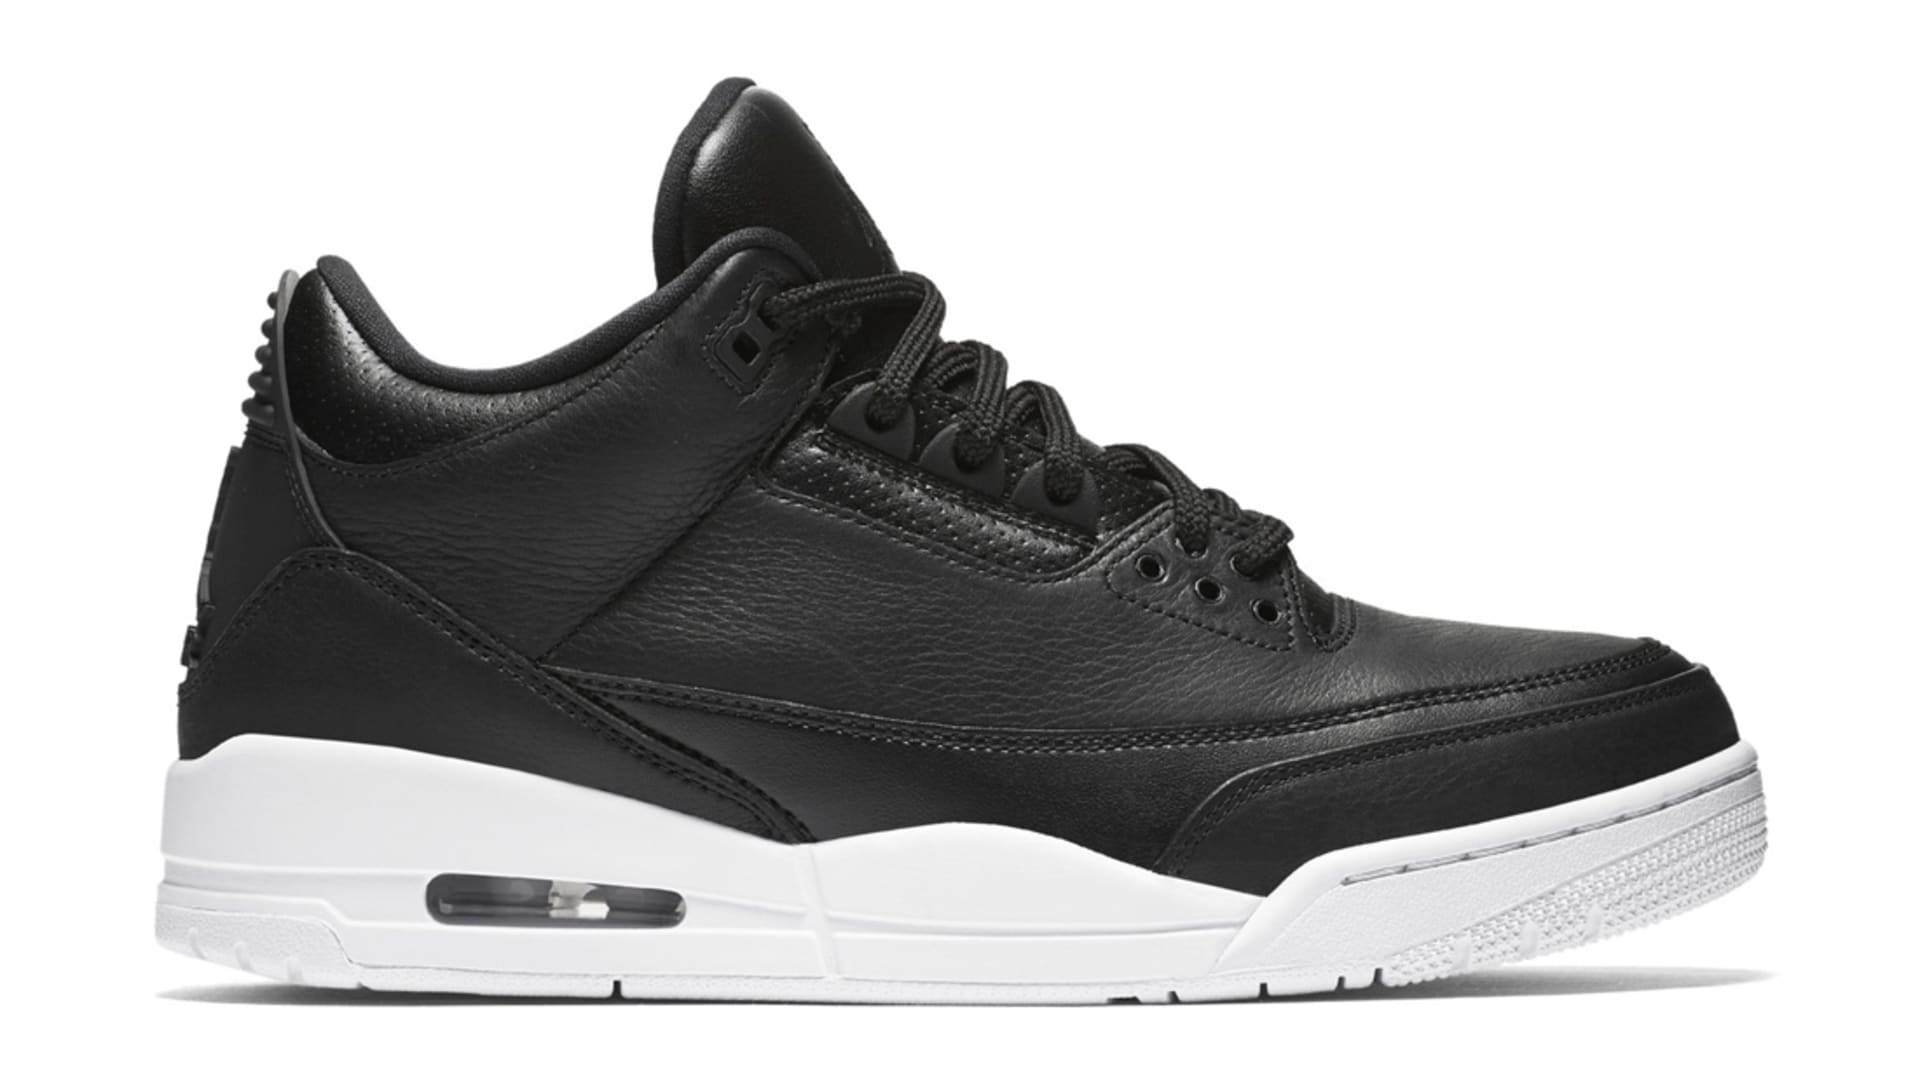 best sneakers 85d1c b5783 Air Jordan 3 Retro Cyber Monday Sole Collector Release Date Roundup